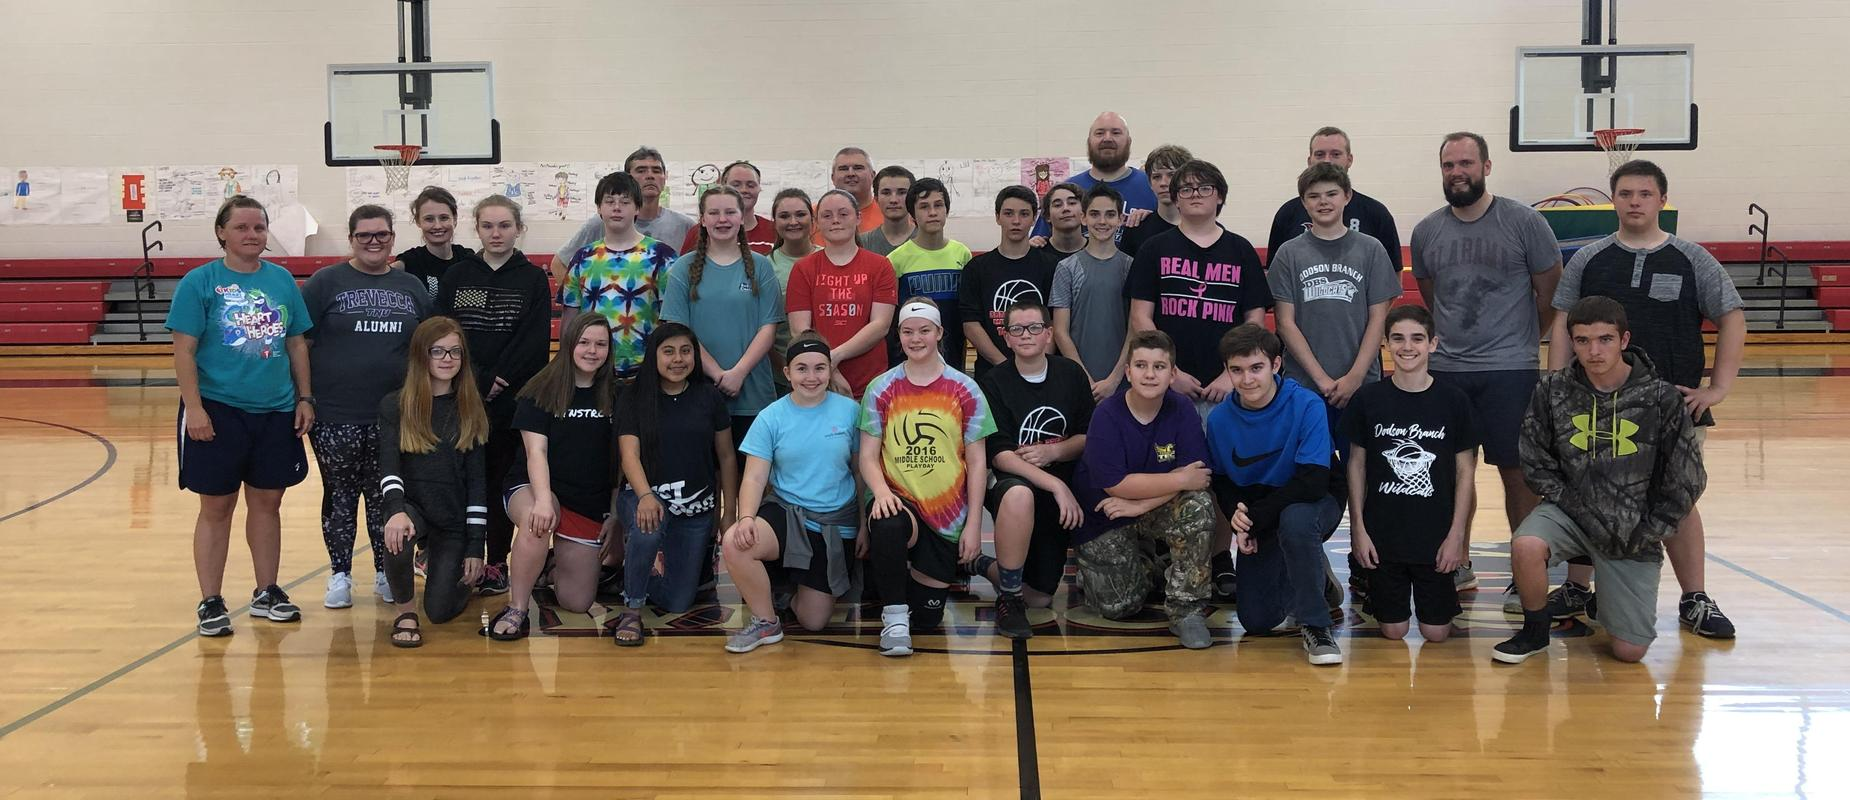 group picture for 8th grade vs teachers basketball game